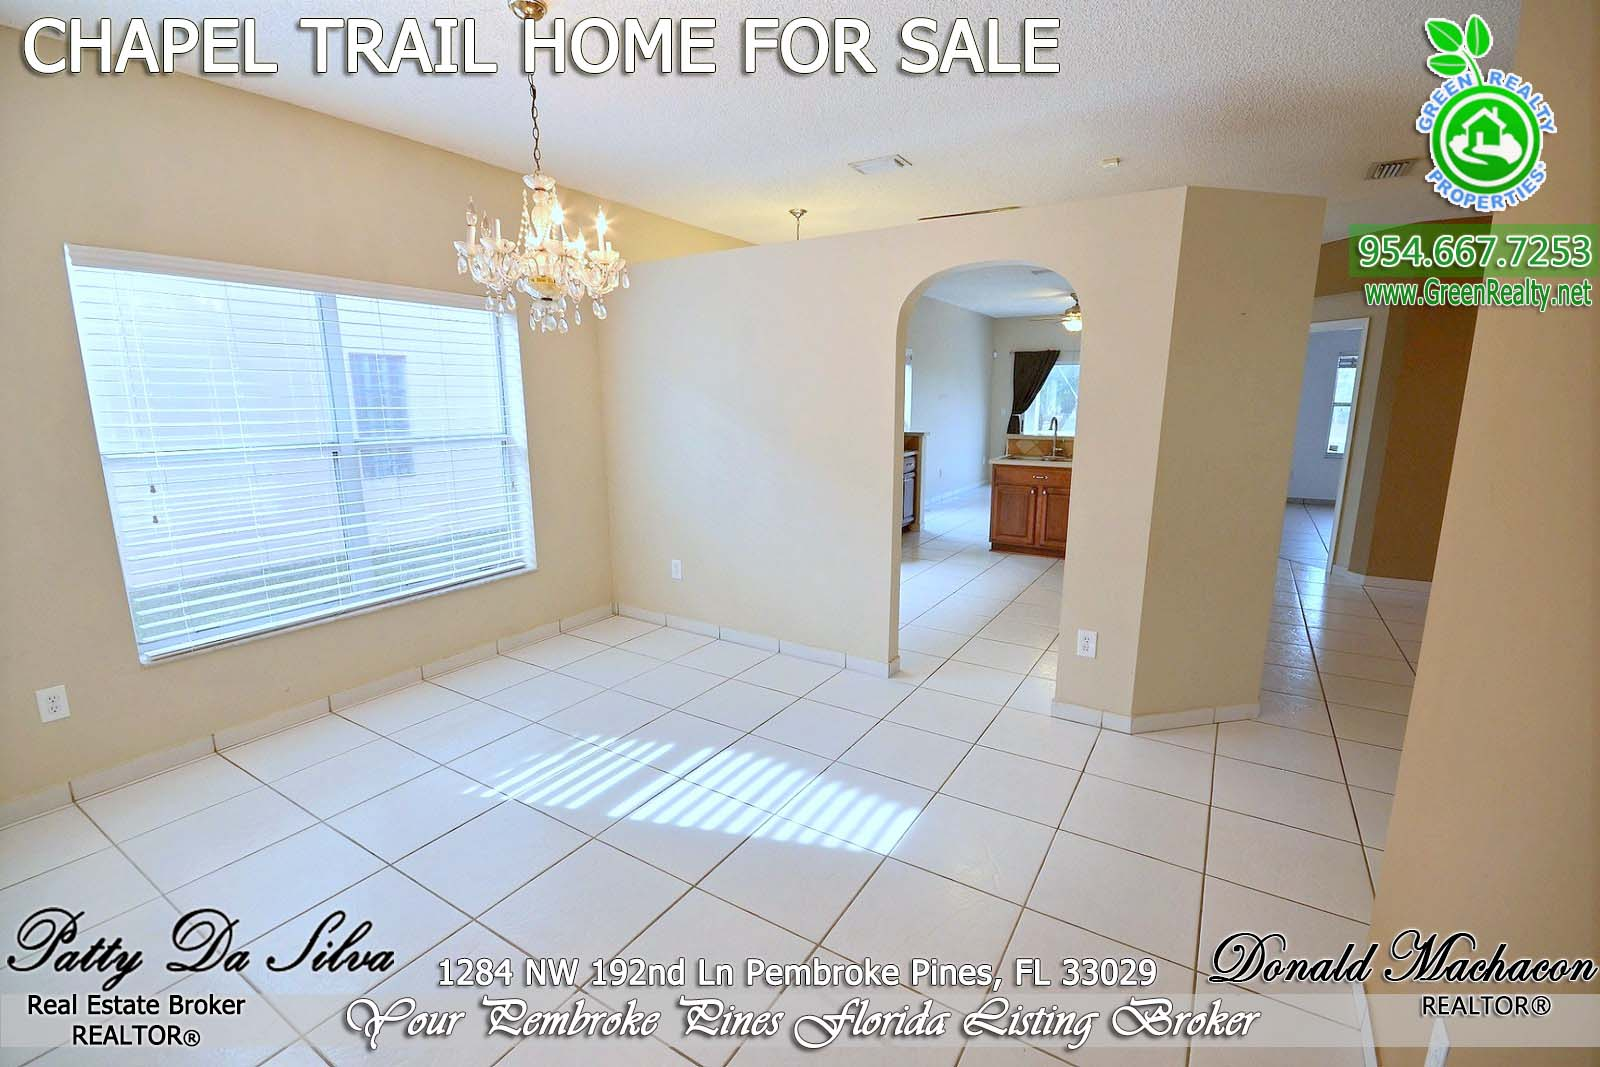 12 Pembroke Pines Real Estate (1)